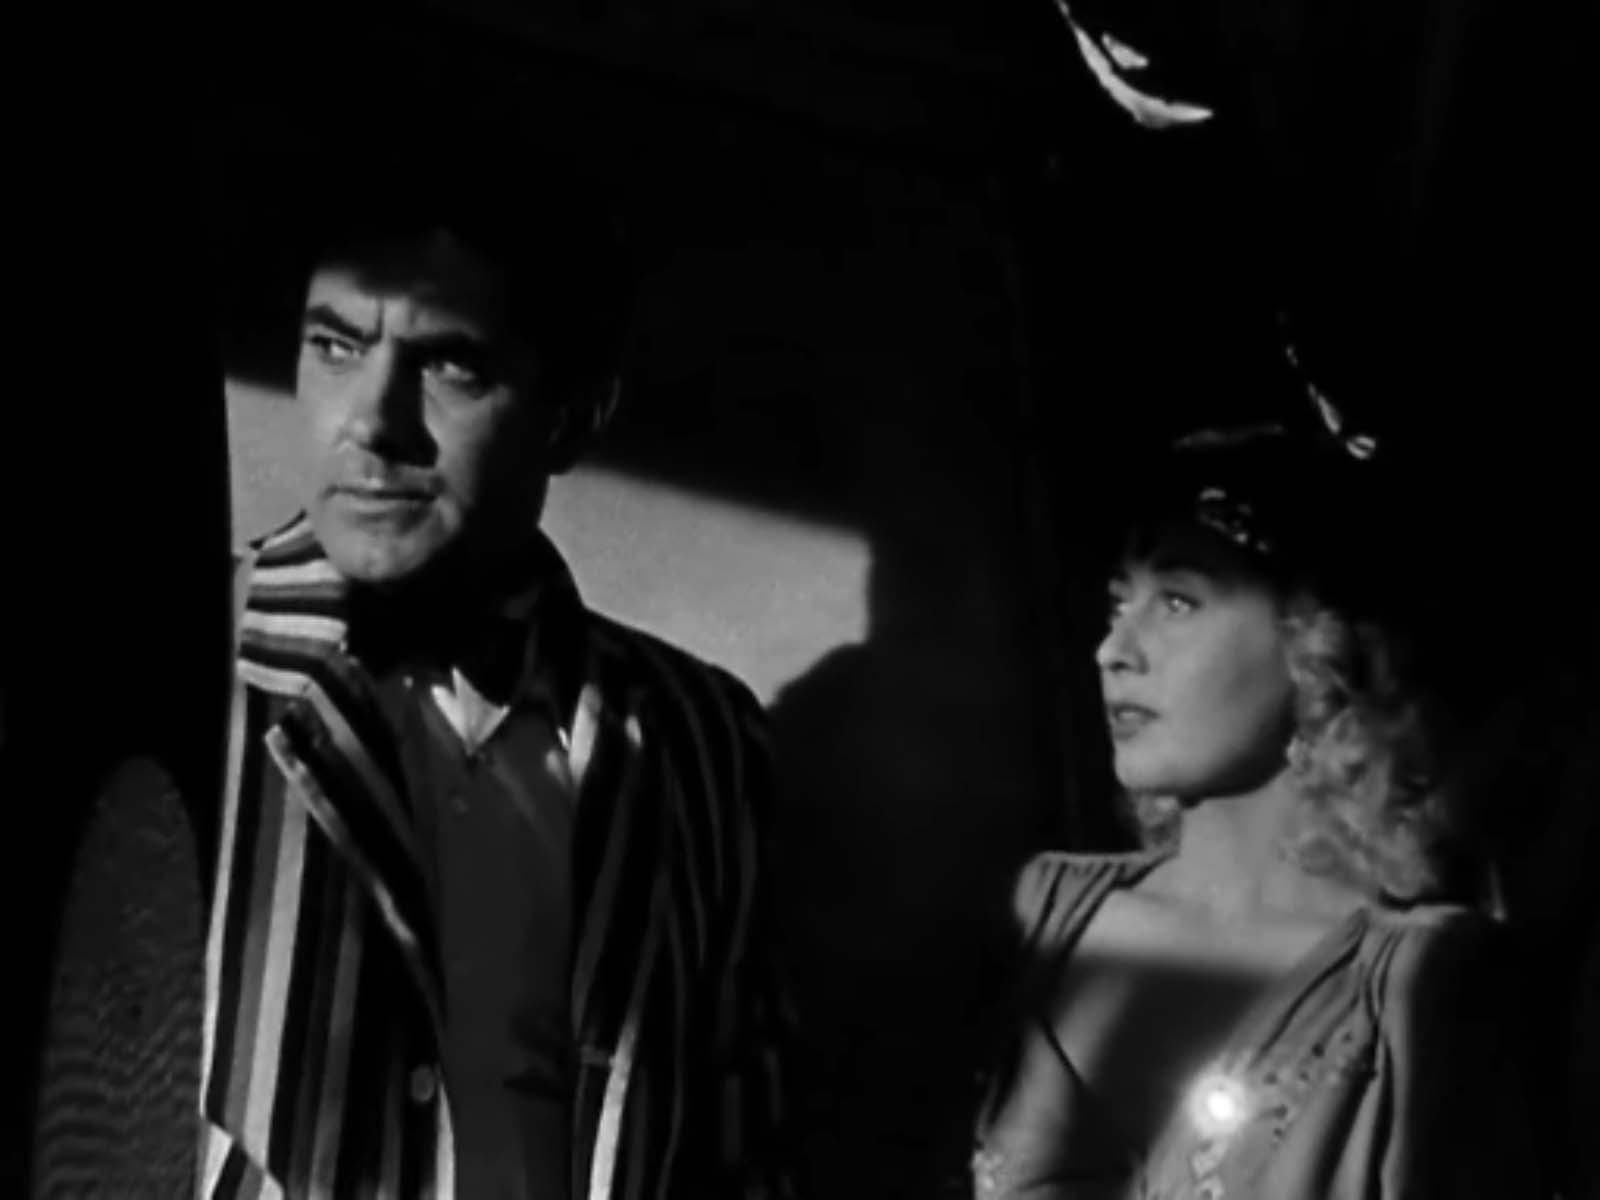 film noir archives silver screen modes by christian esquevin noir nightmare alley